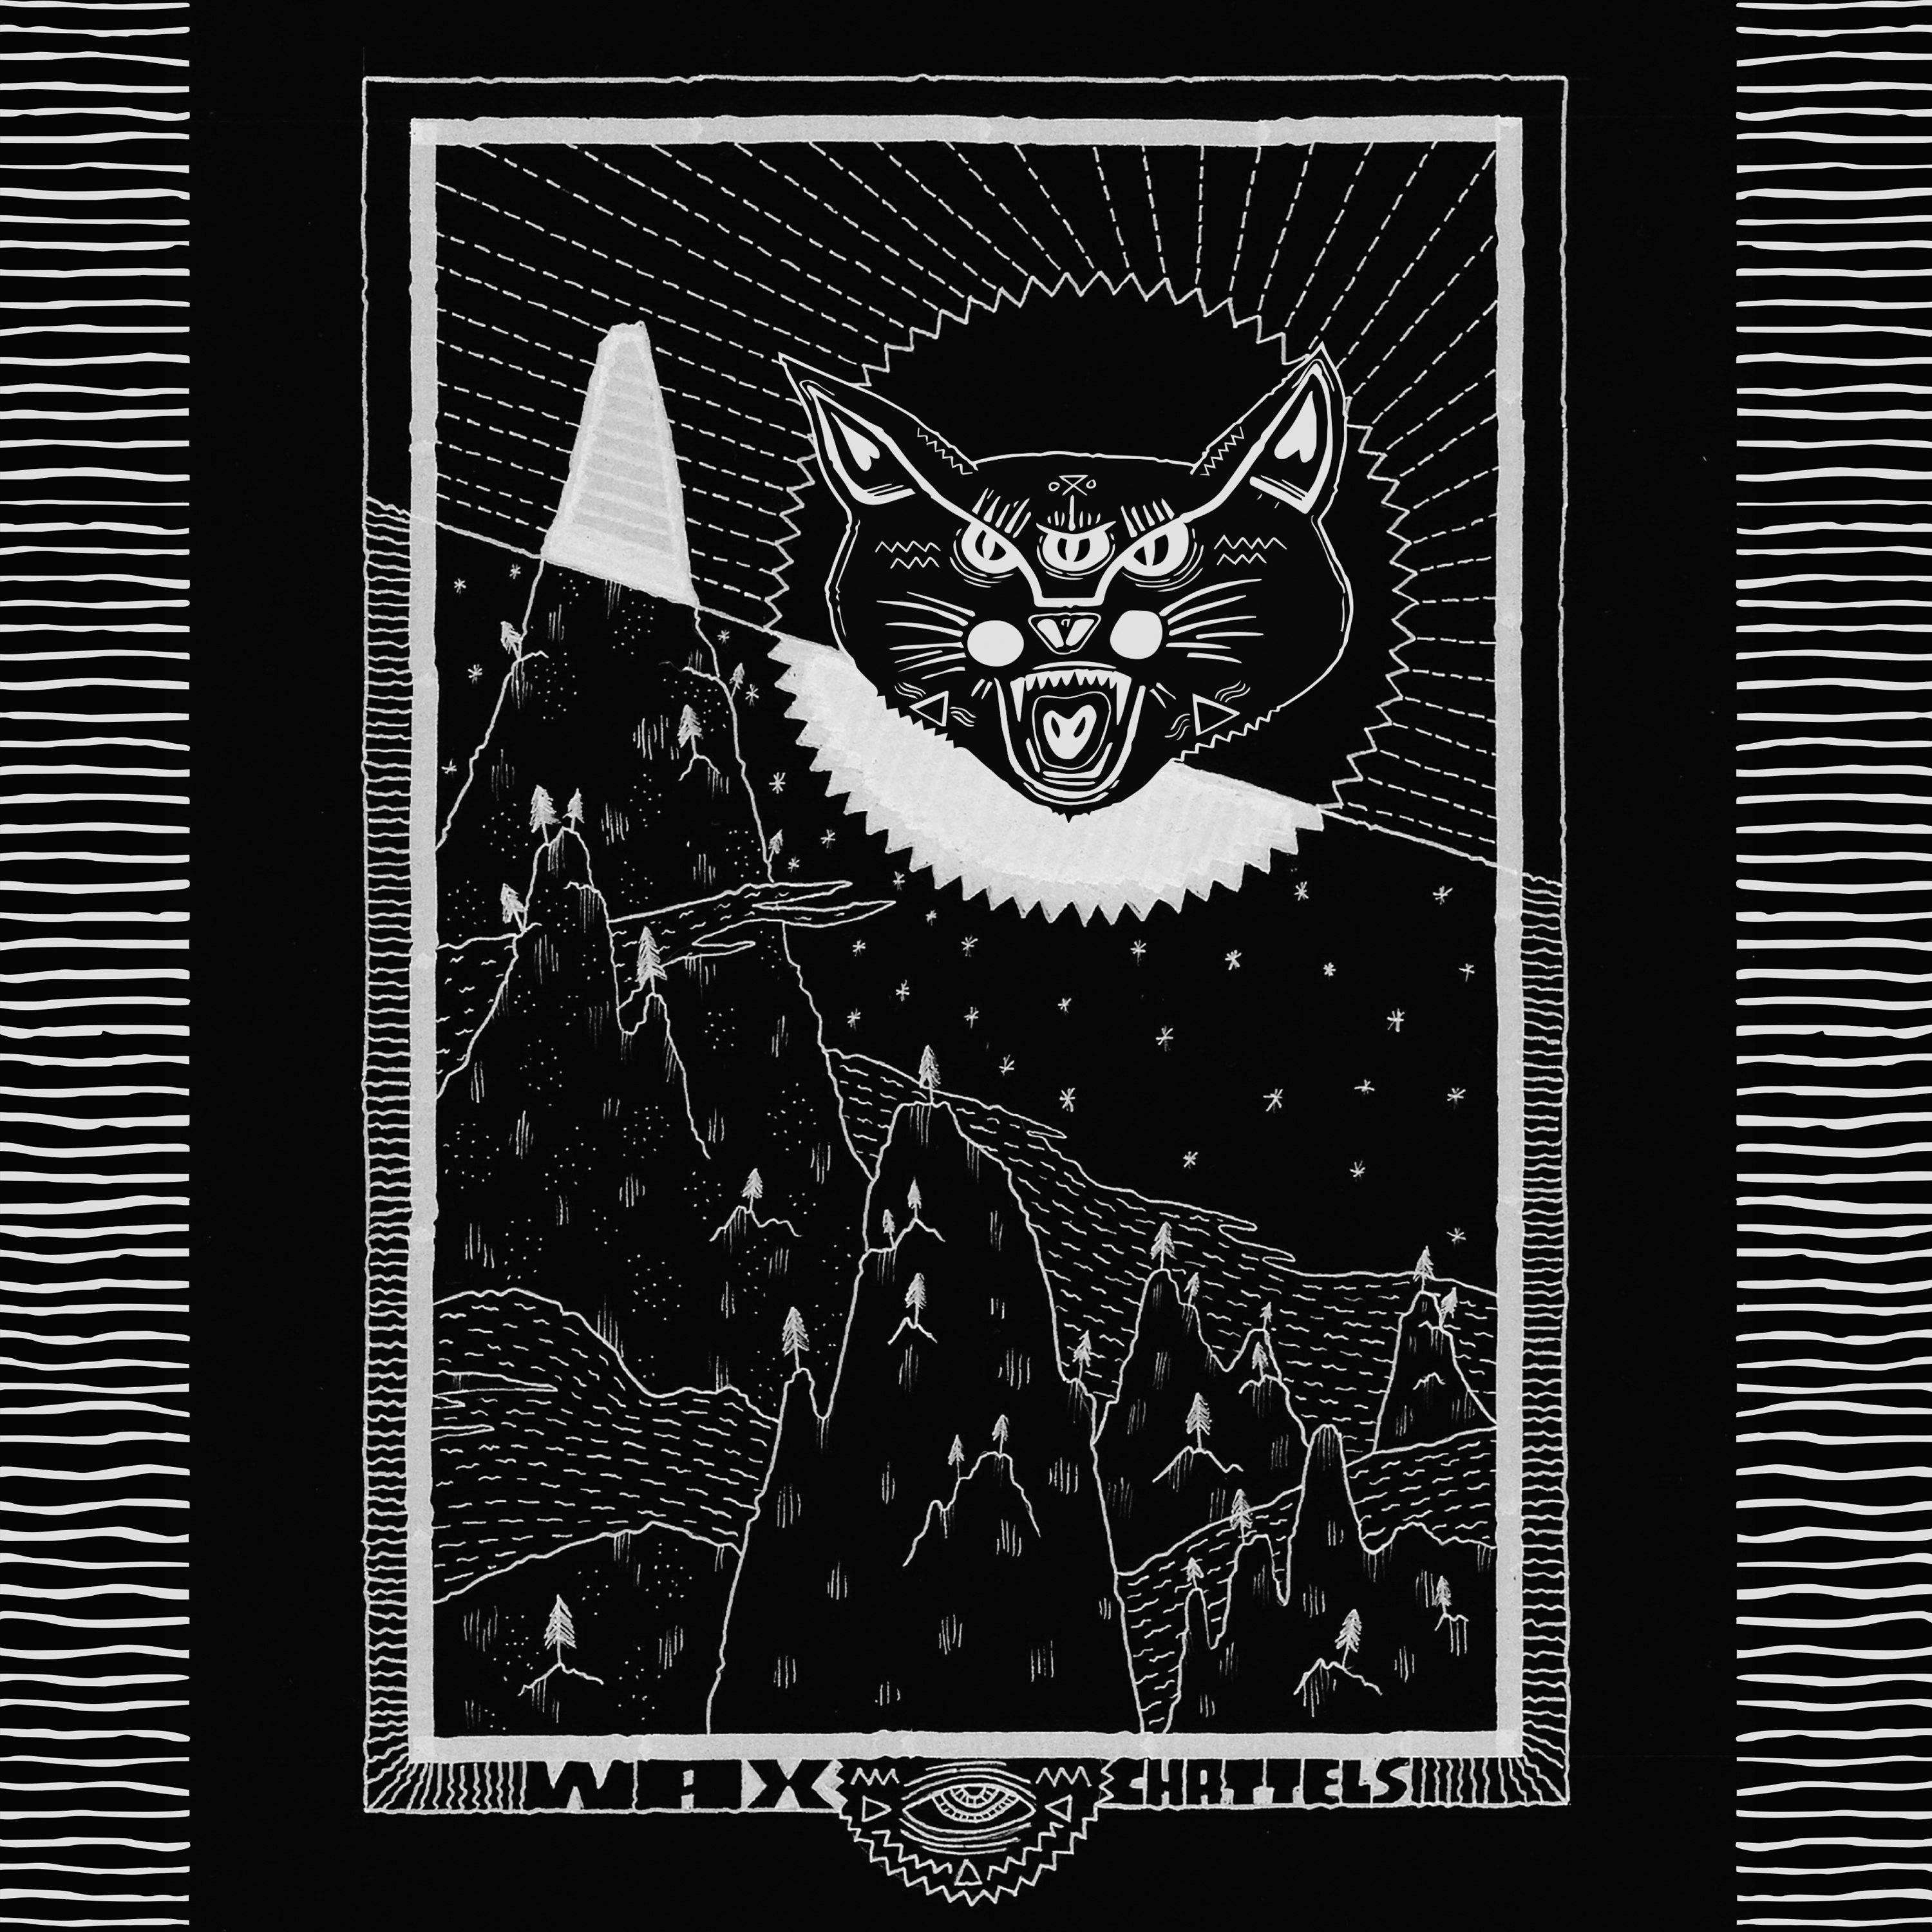 Wax Chattels - Wax Chattels (2018)